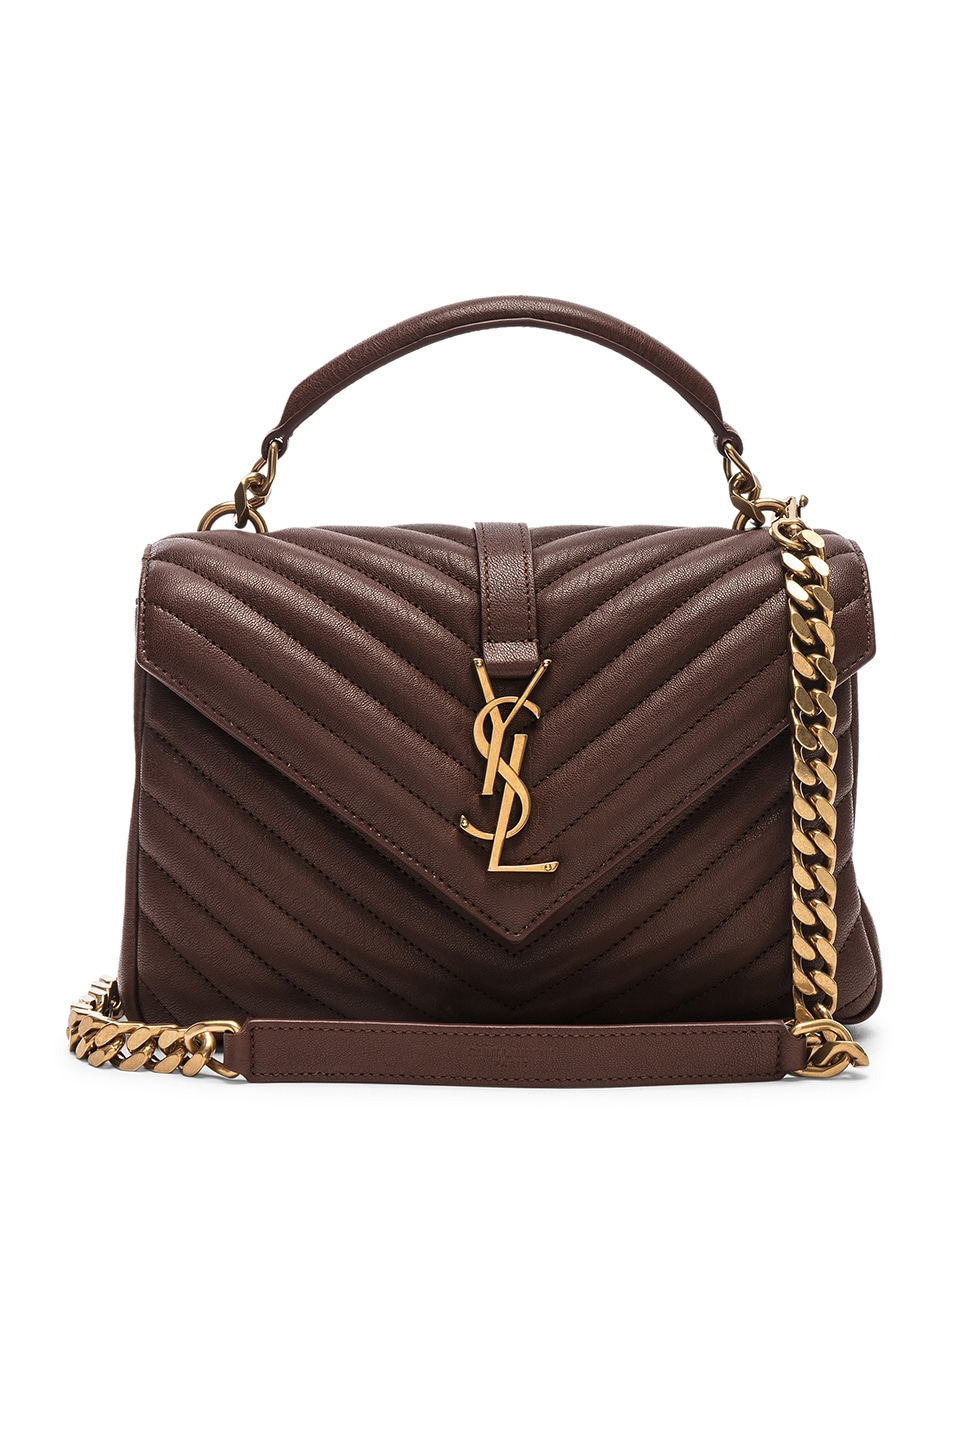 Image 1 of Saint Laurent Medium Monogramme College Bag in Old Brandy